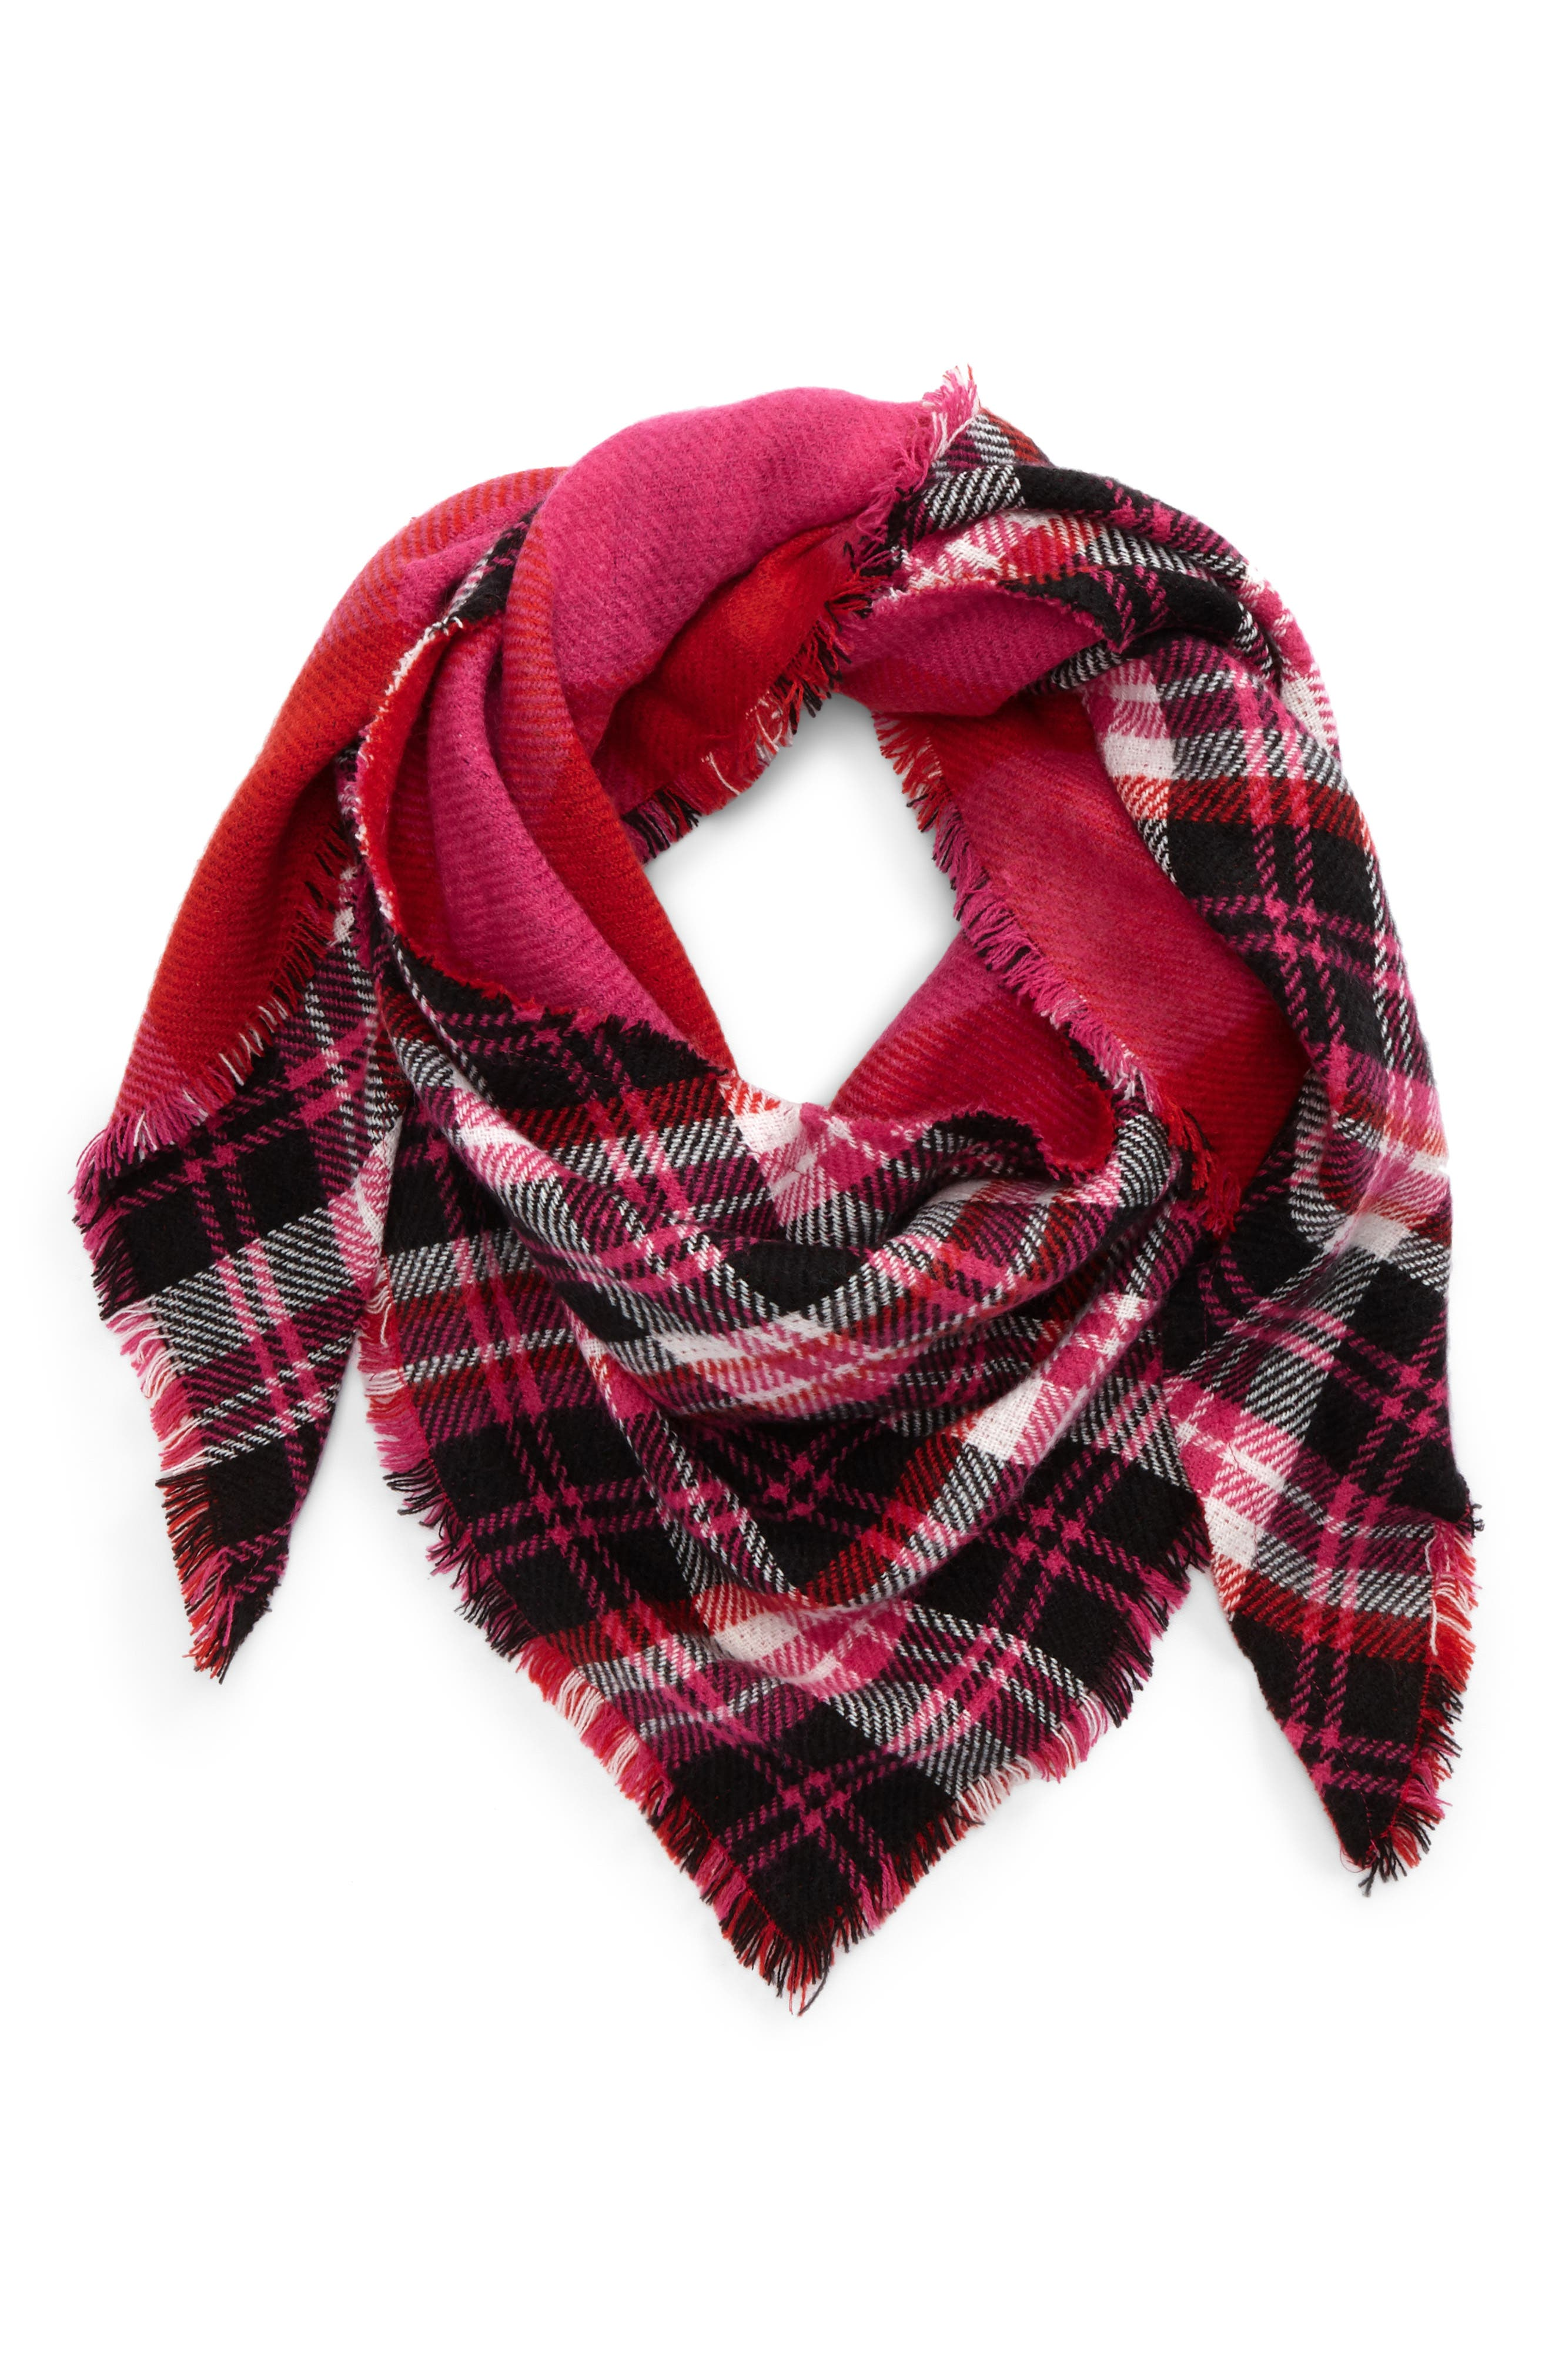 Reversible Plaid Triangle Scarf,                             Main thumbnail 1, color,                             651